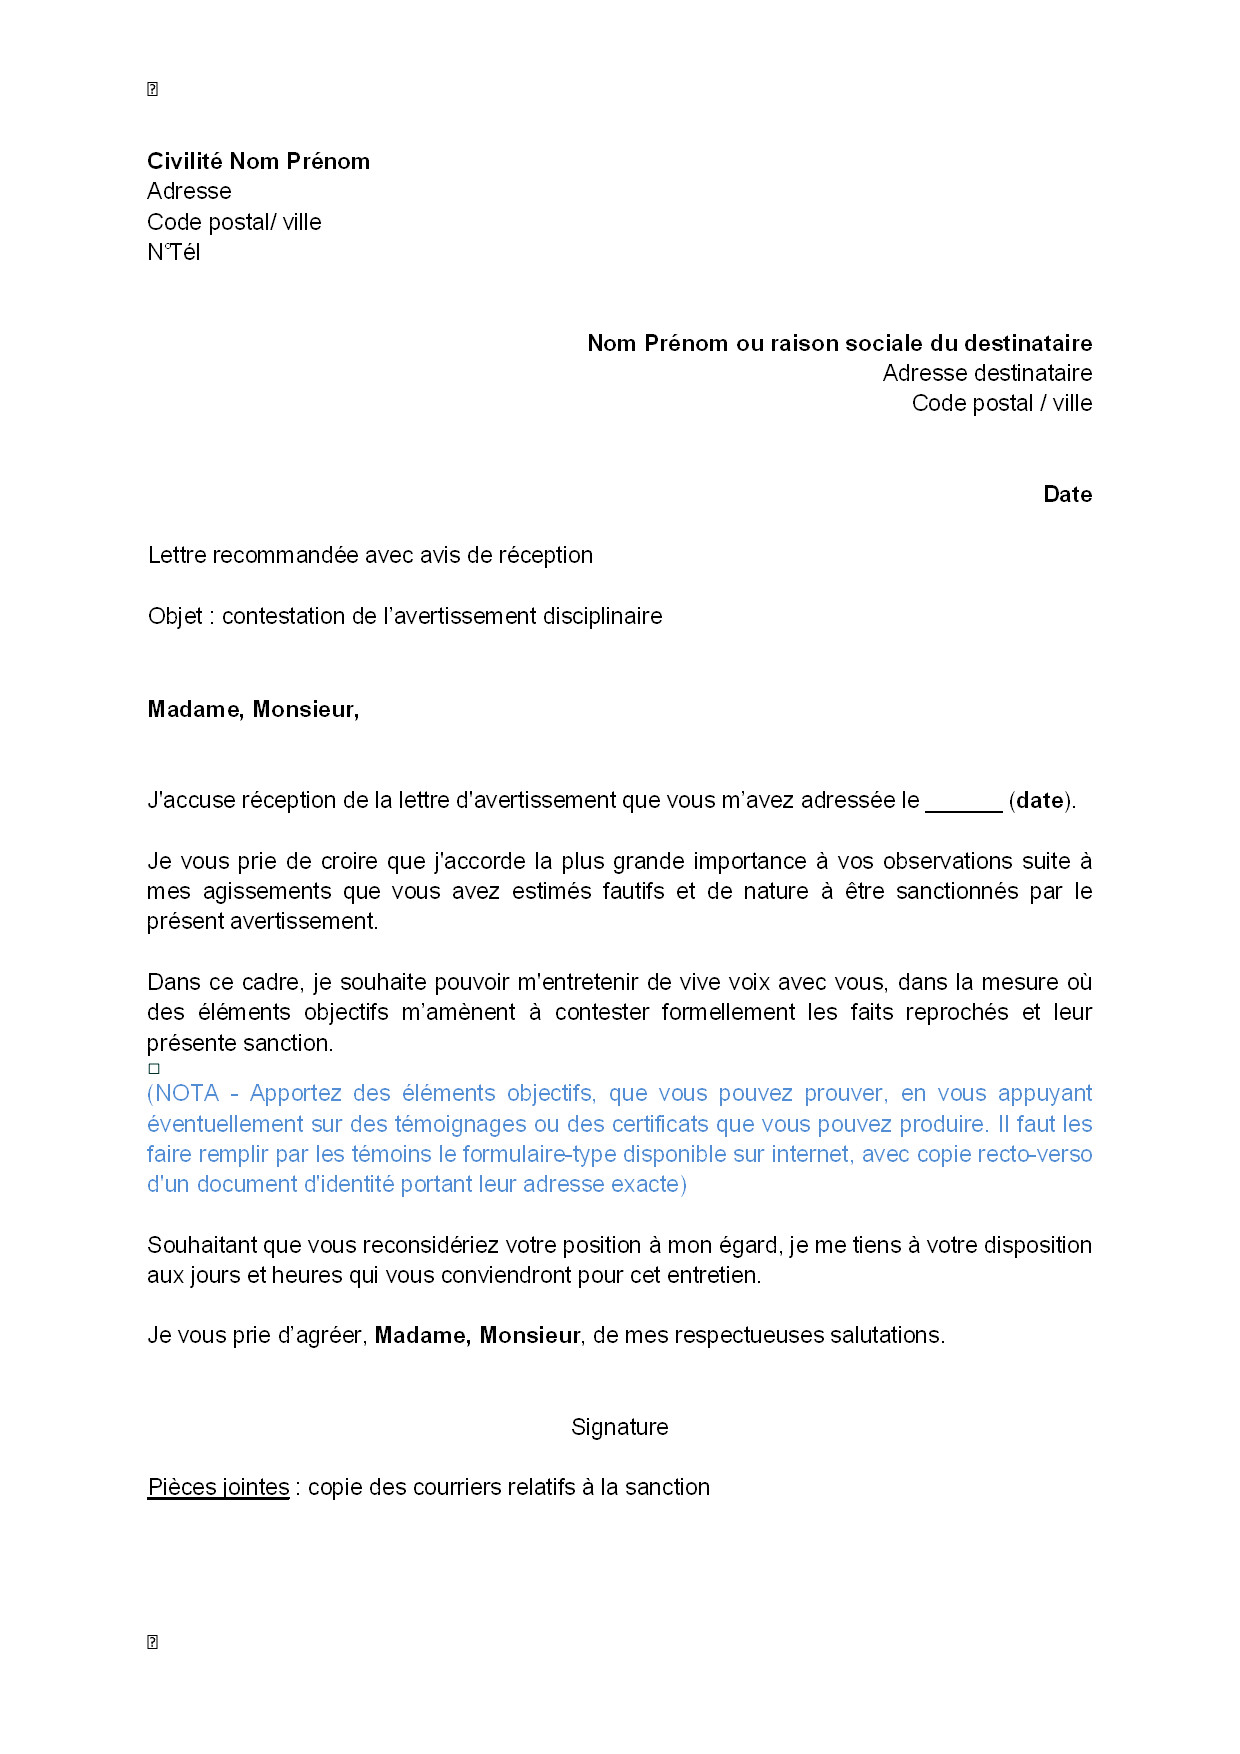 Courrier contestation majoration amende - ifcil